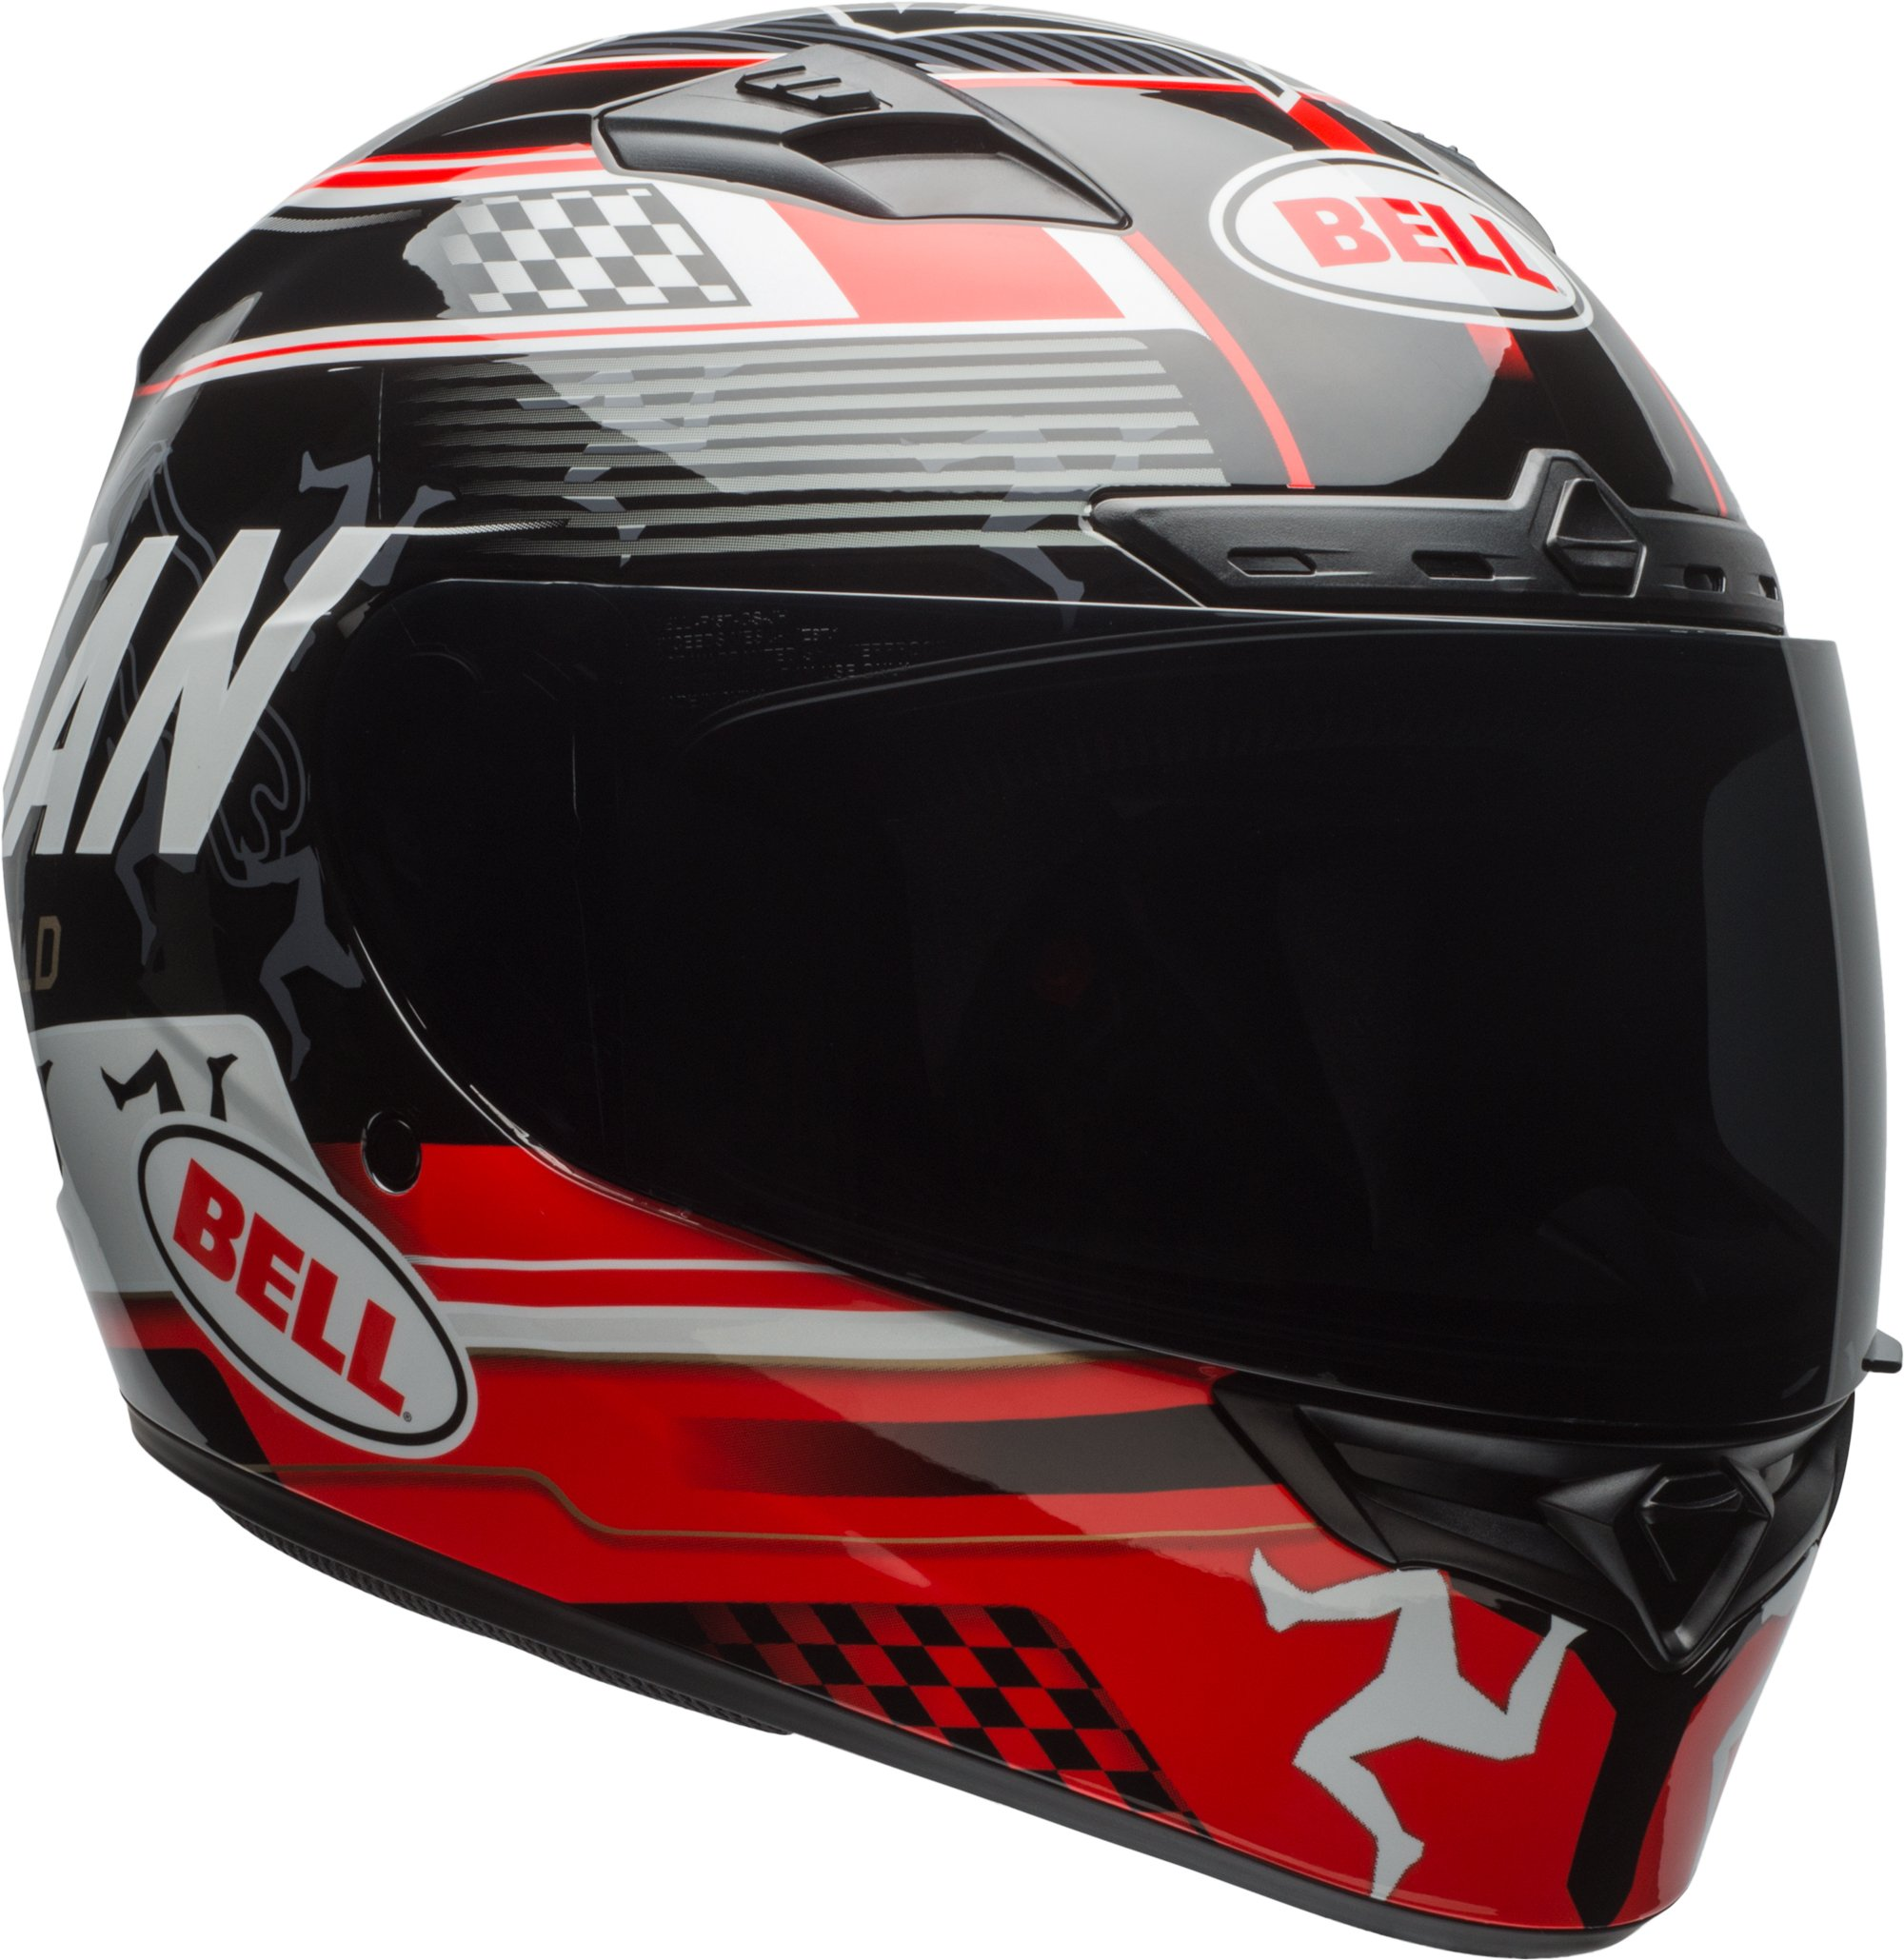 Bell Qualifier DLX Isle Of Man Black/Red Full Face Helmet - X-Large by Bell (Image #1)